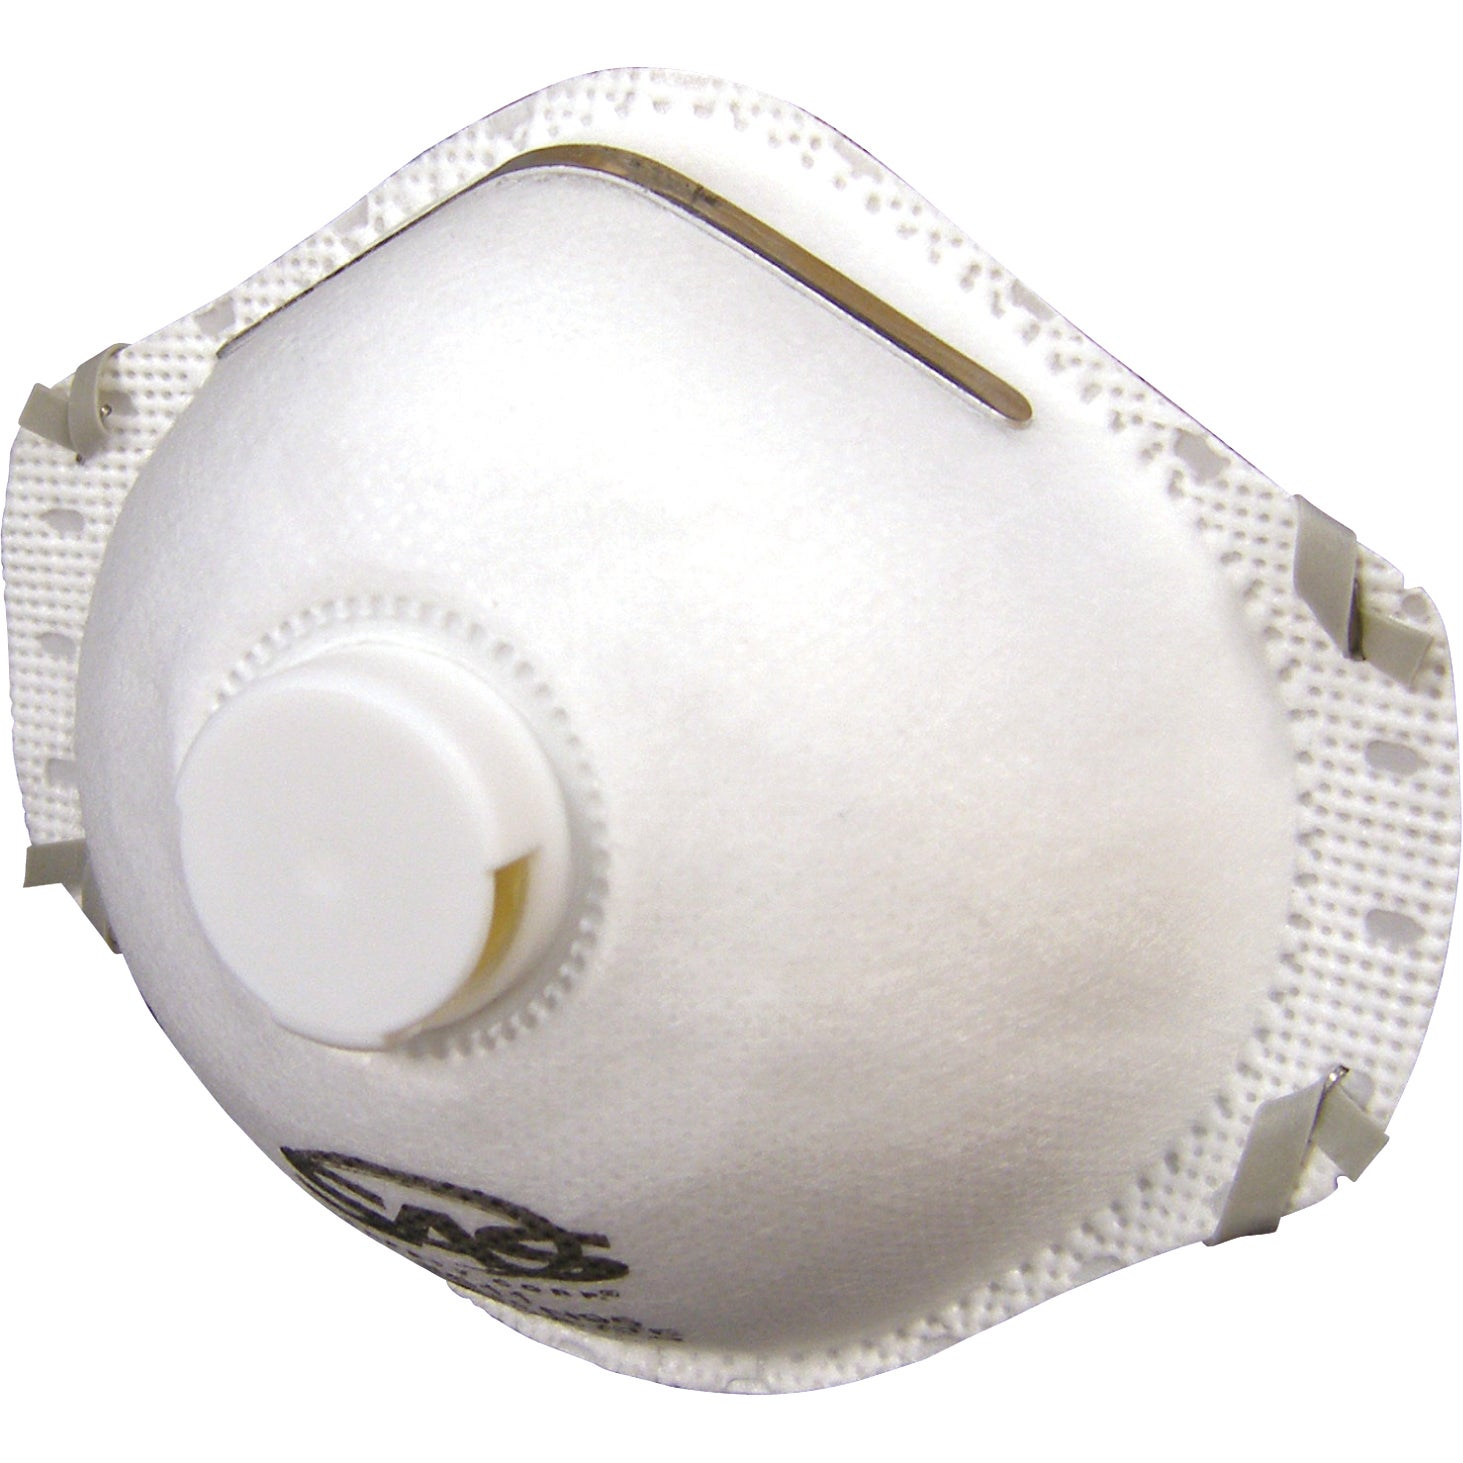 SAS Safety Corporation 8611 N95 Valved Particulate Respirator 10-count (Safety gear)